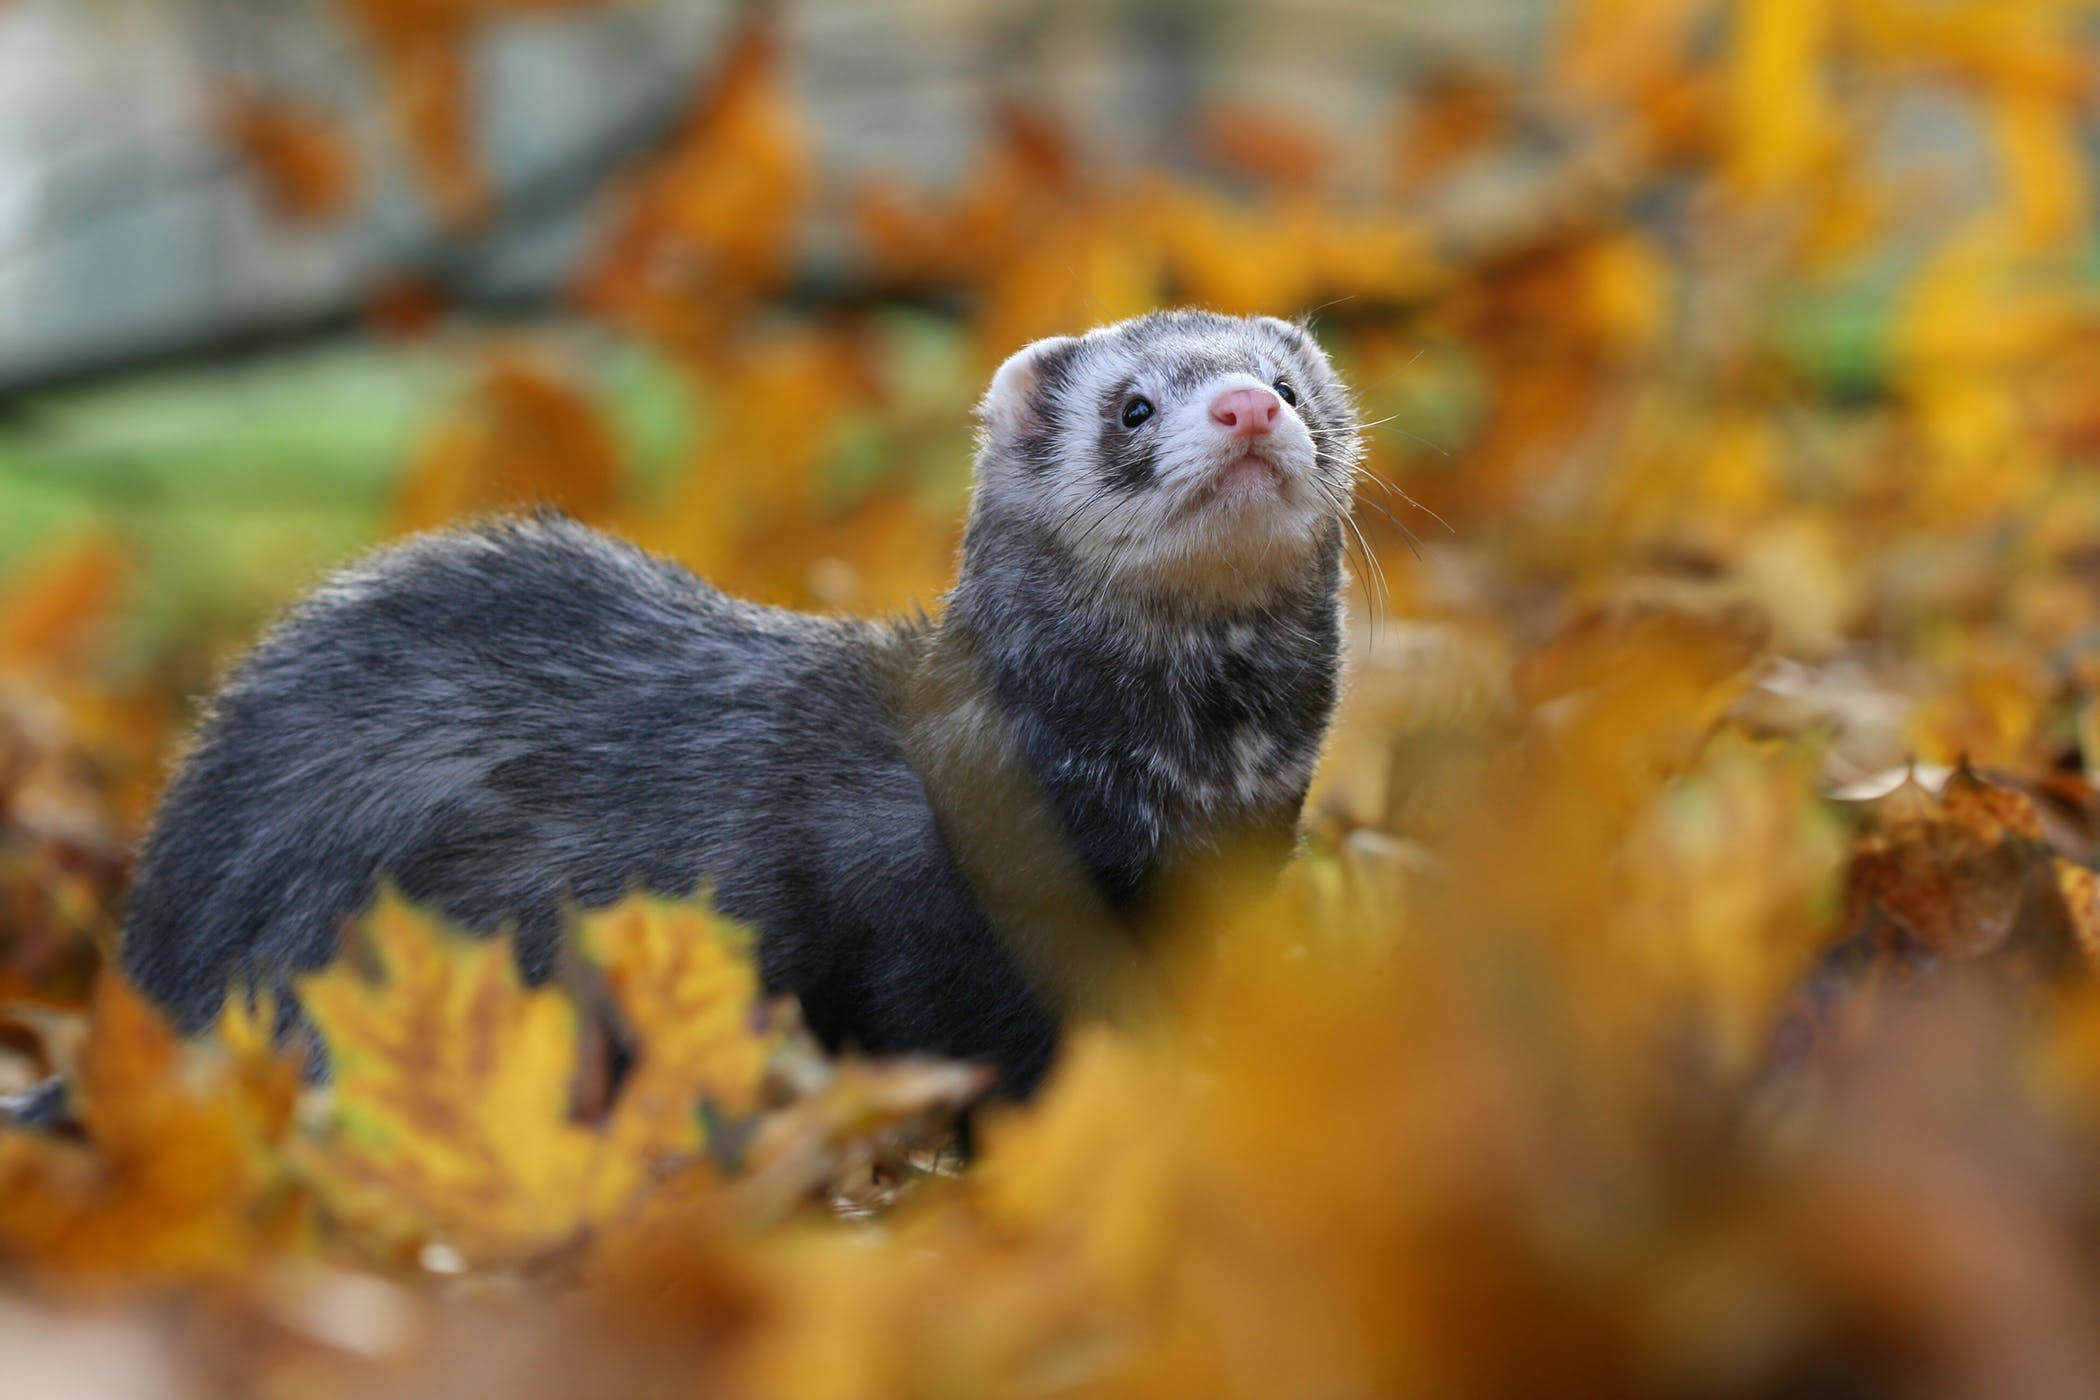 Lack of Coordination and Sensory Dysfunction in Ferrets